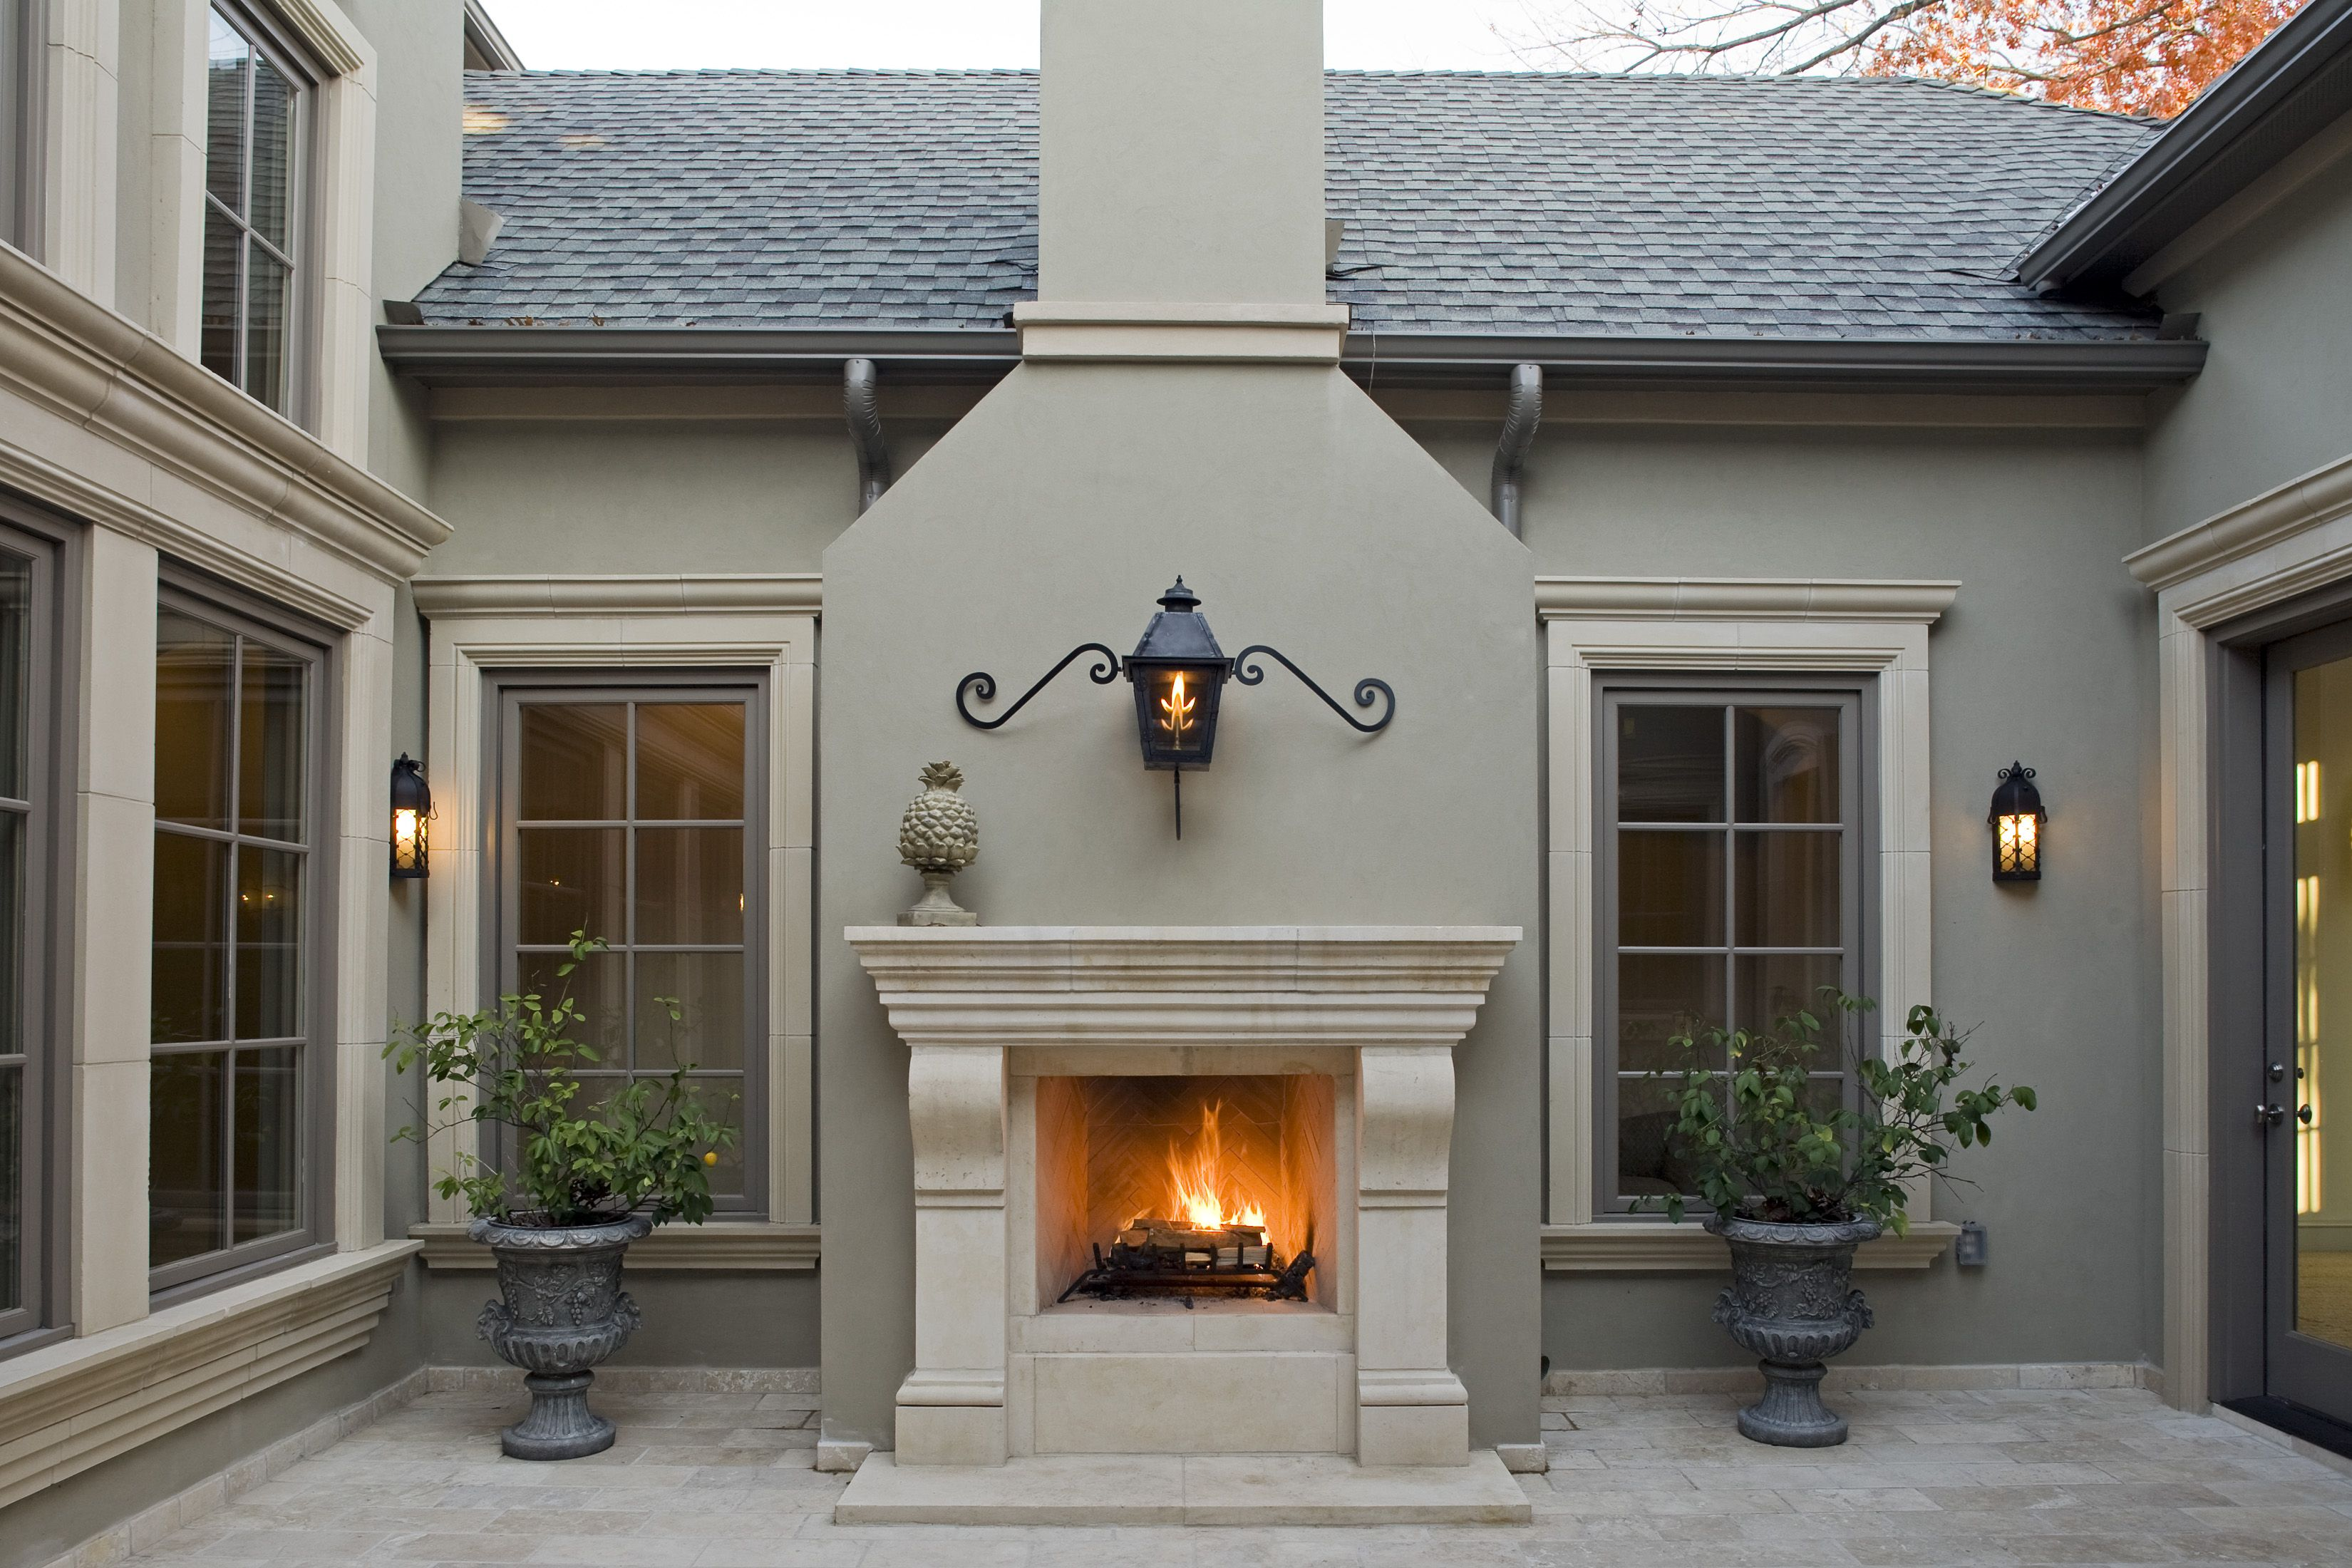 The stucco on this house is a three coat true masonry product with